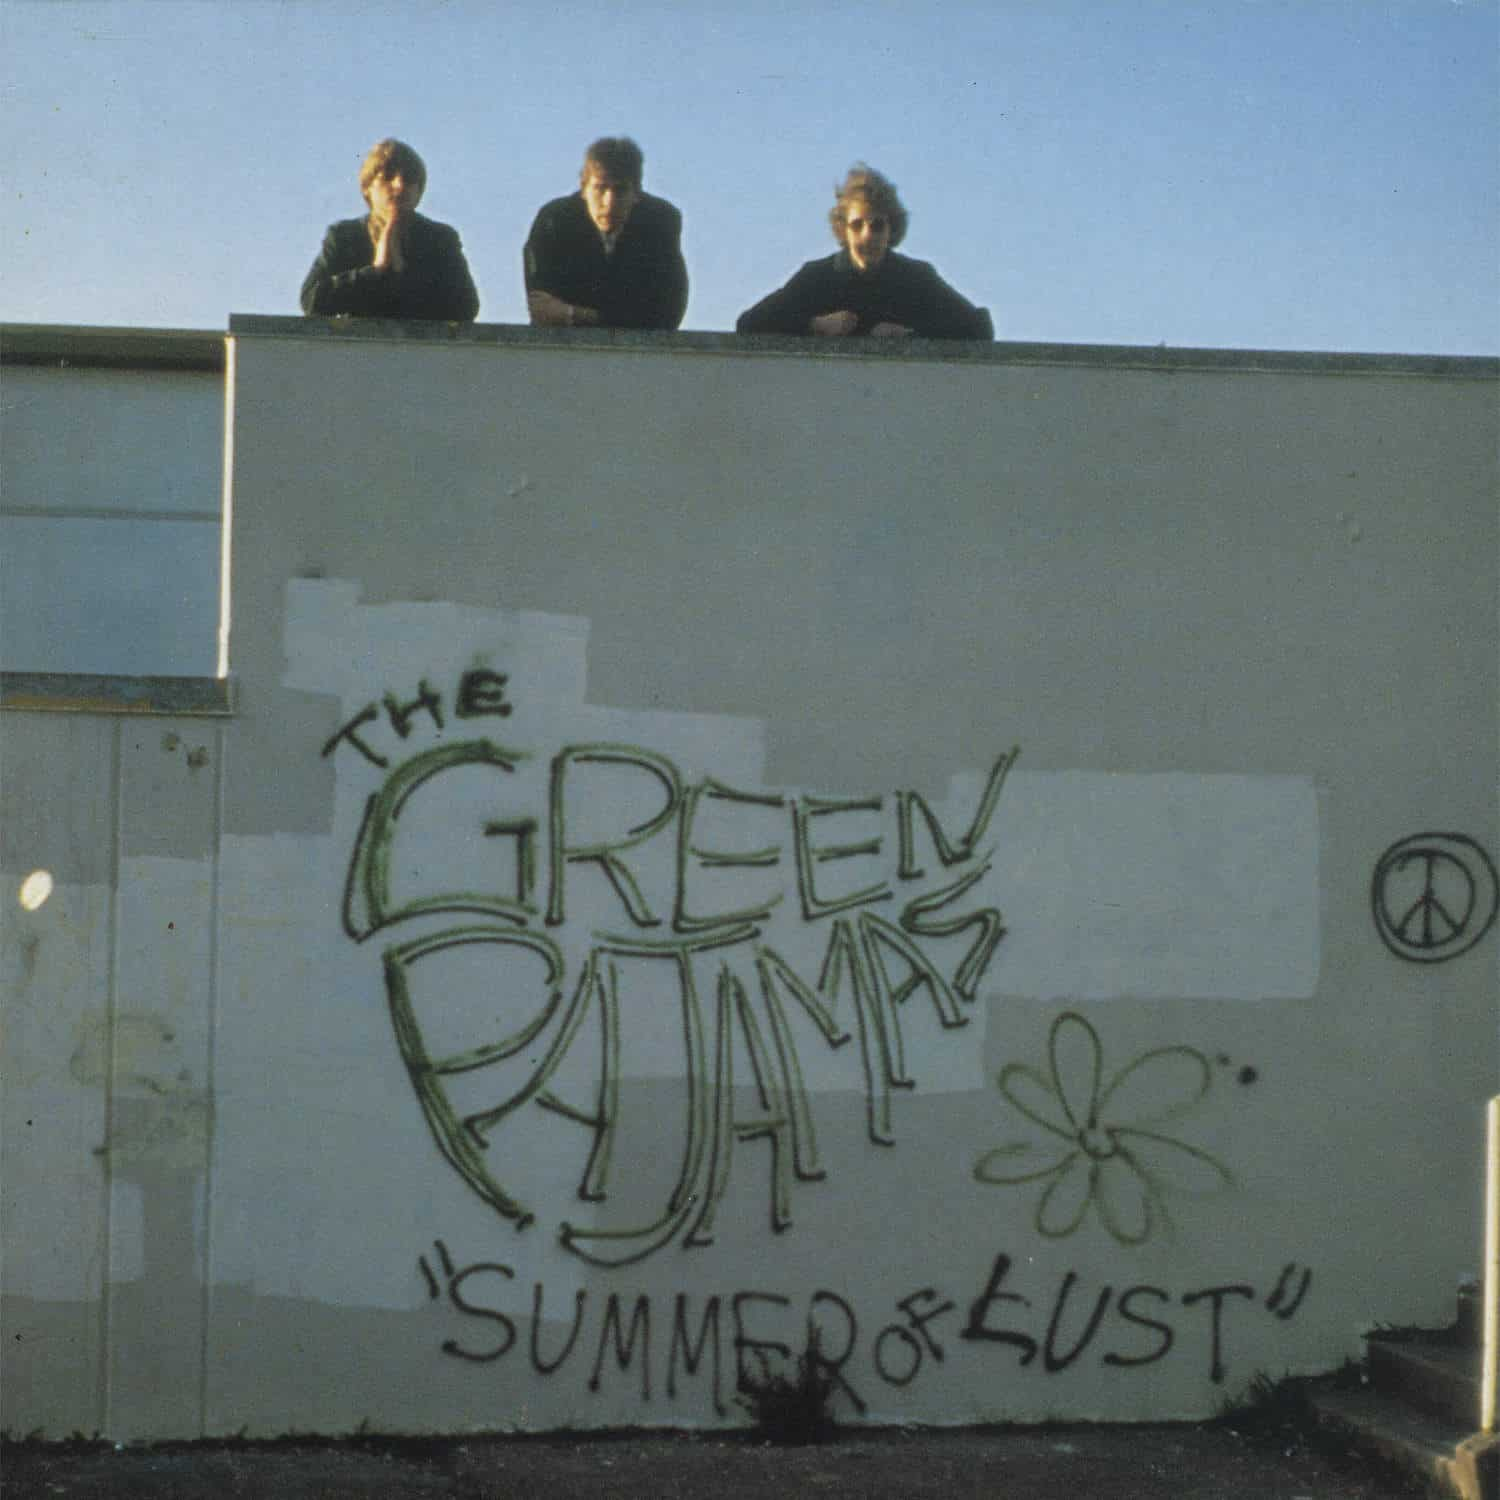 The Green Pajamas - Summer of Lust